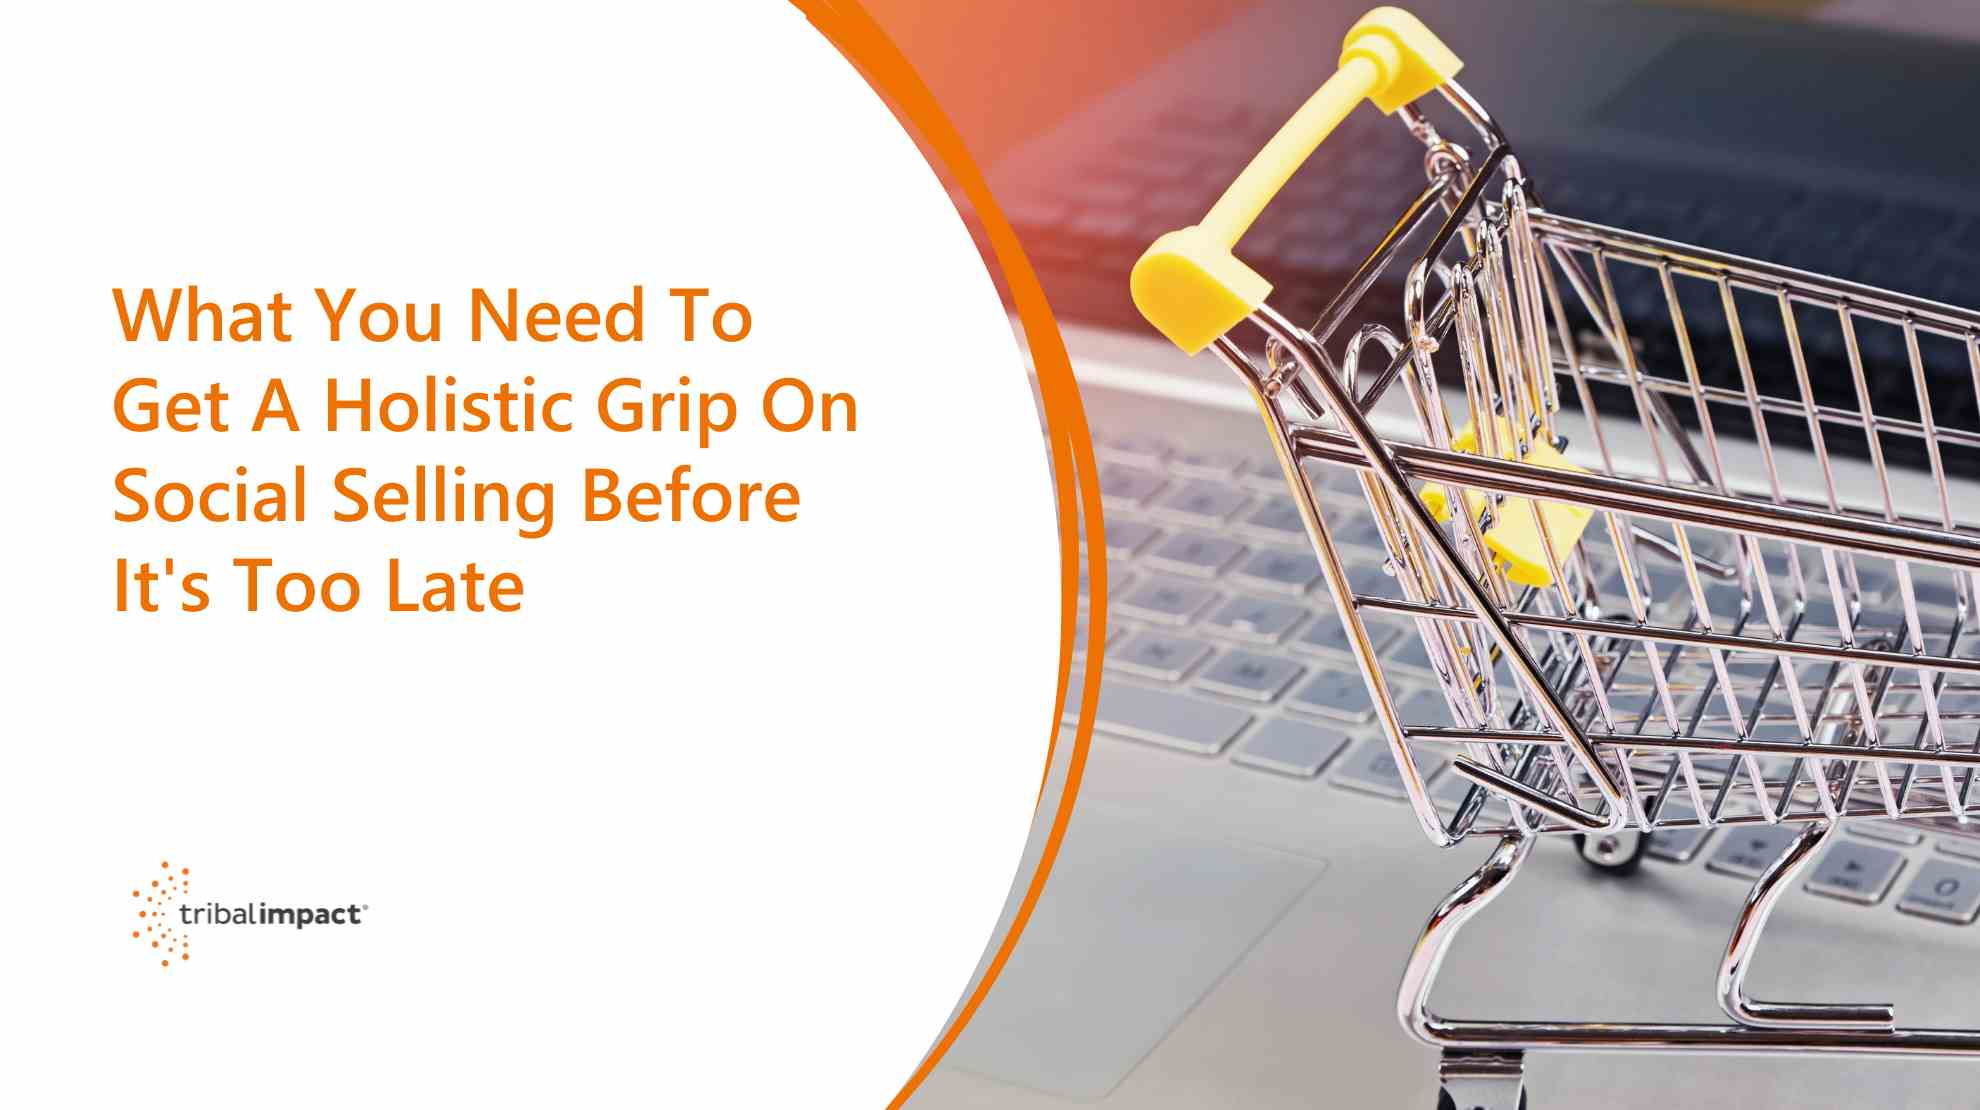 What You Need To Get A Holistic Grip On Social Selling Before Its Too Late blog image